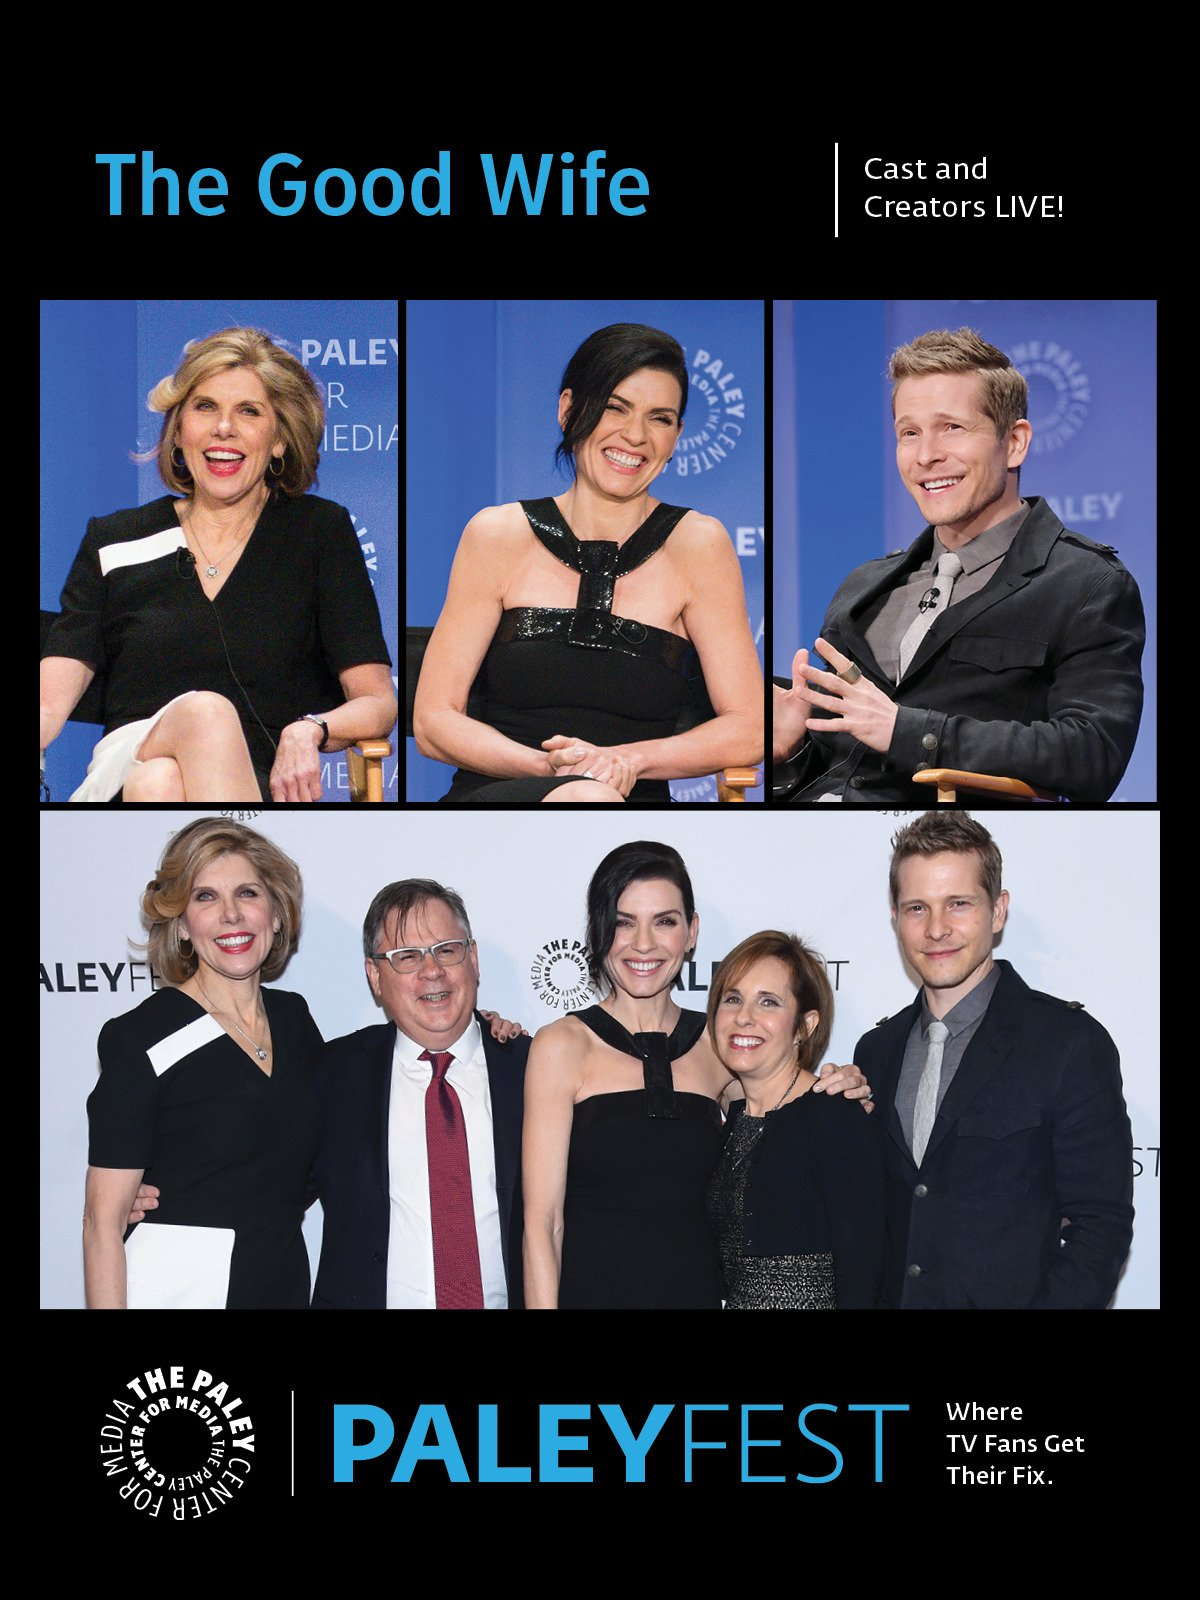 The Good Wife: Cast and Creators PaleyFest